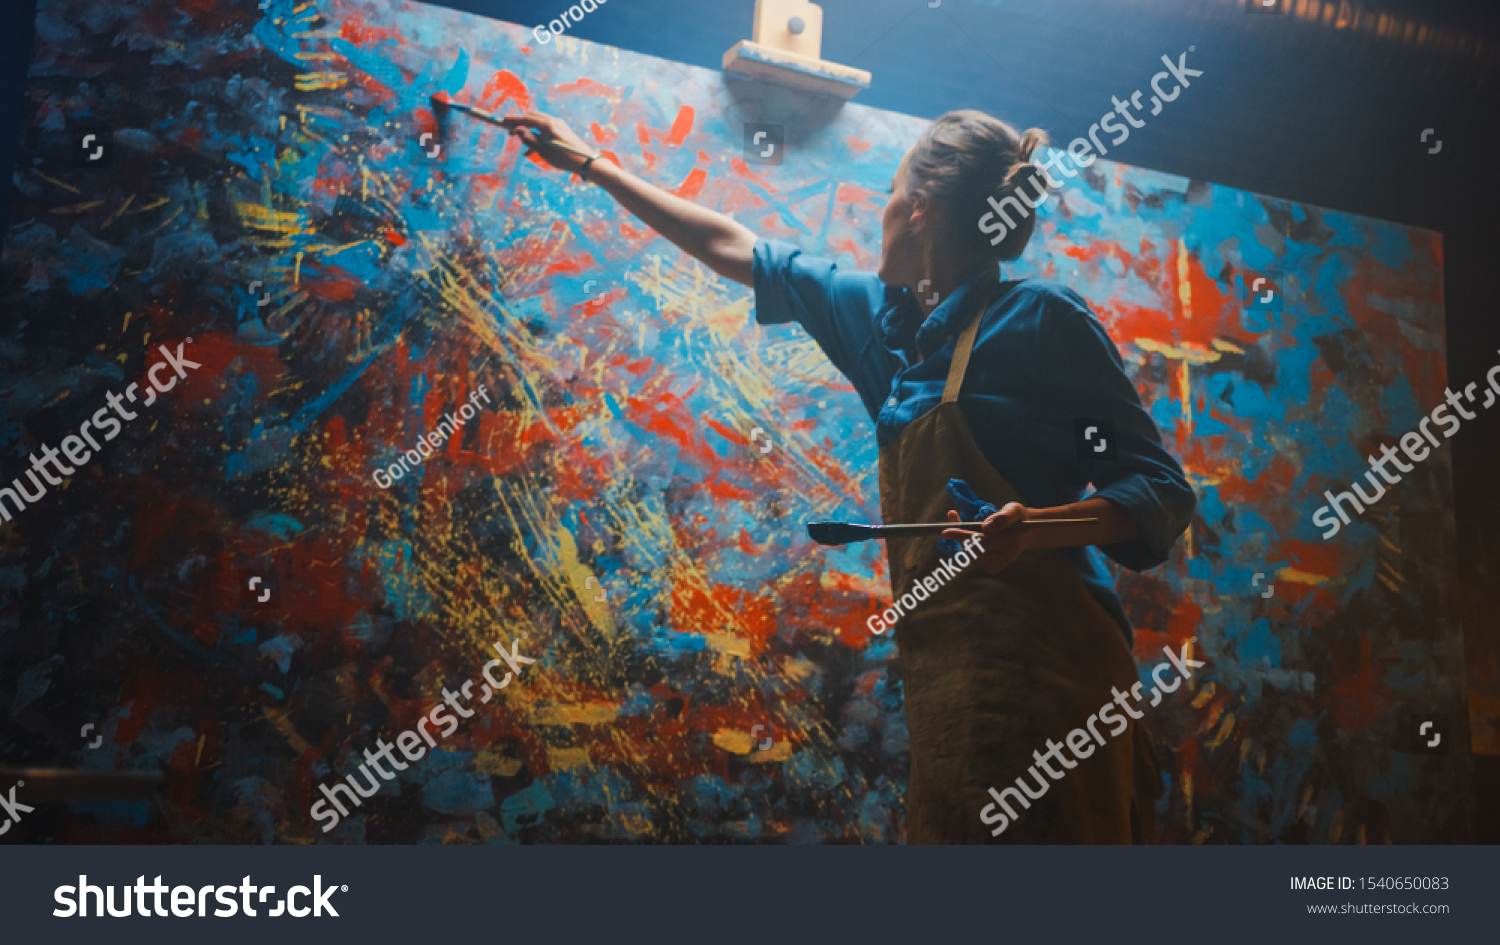 Talented Female Artist Energetically and Enthusiastically Using Paint Brush She Creates Modern Masterpiece of the Oil Painting. Creative Studio with Large Canvas of Striking Colors. Low Angle Shot #1540650083